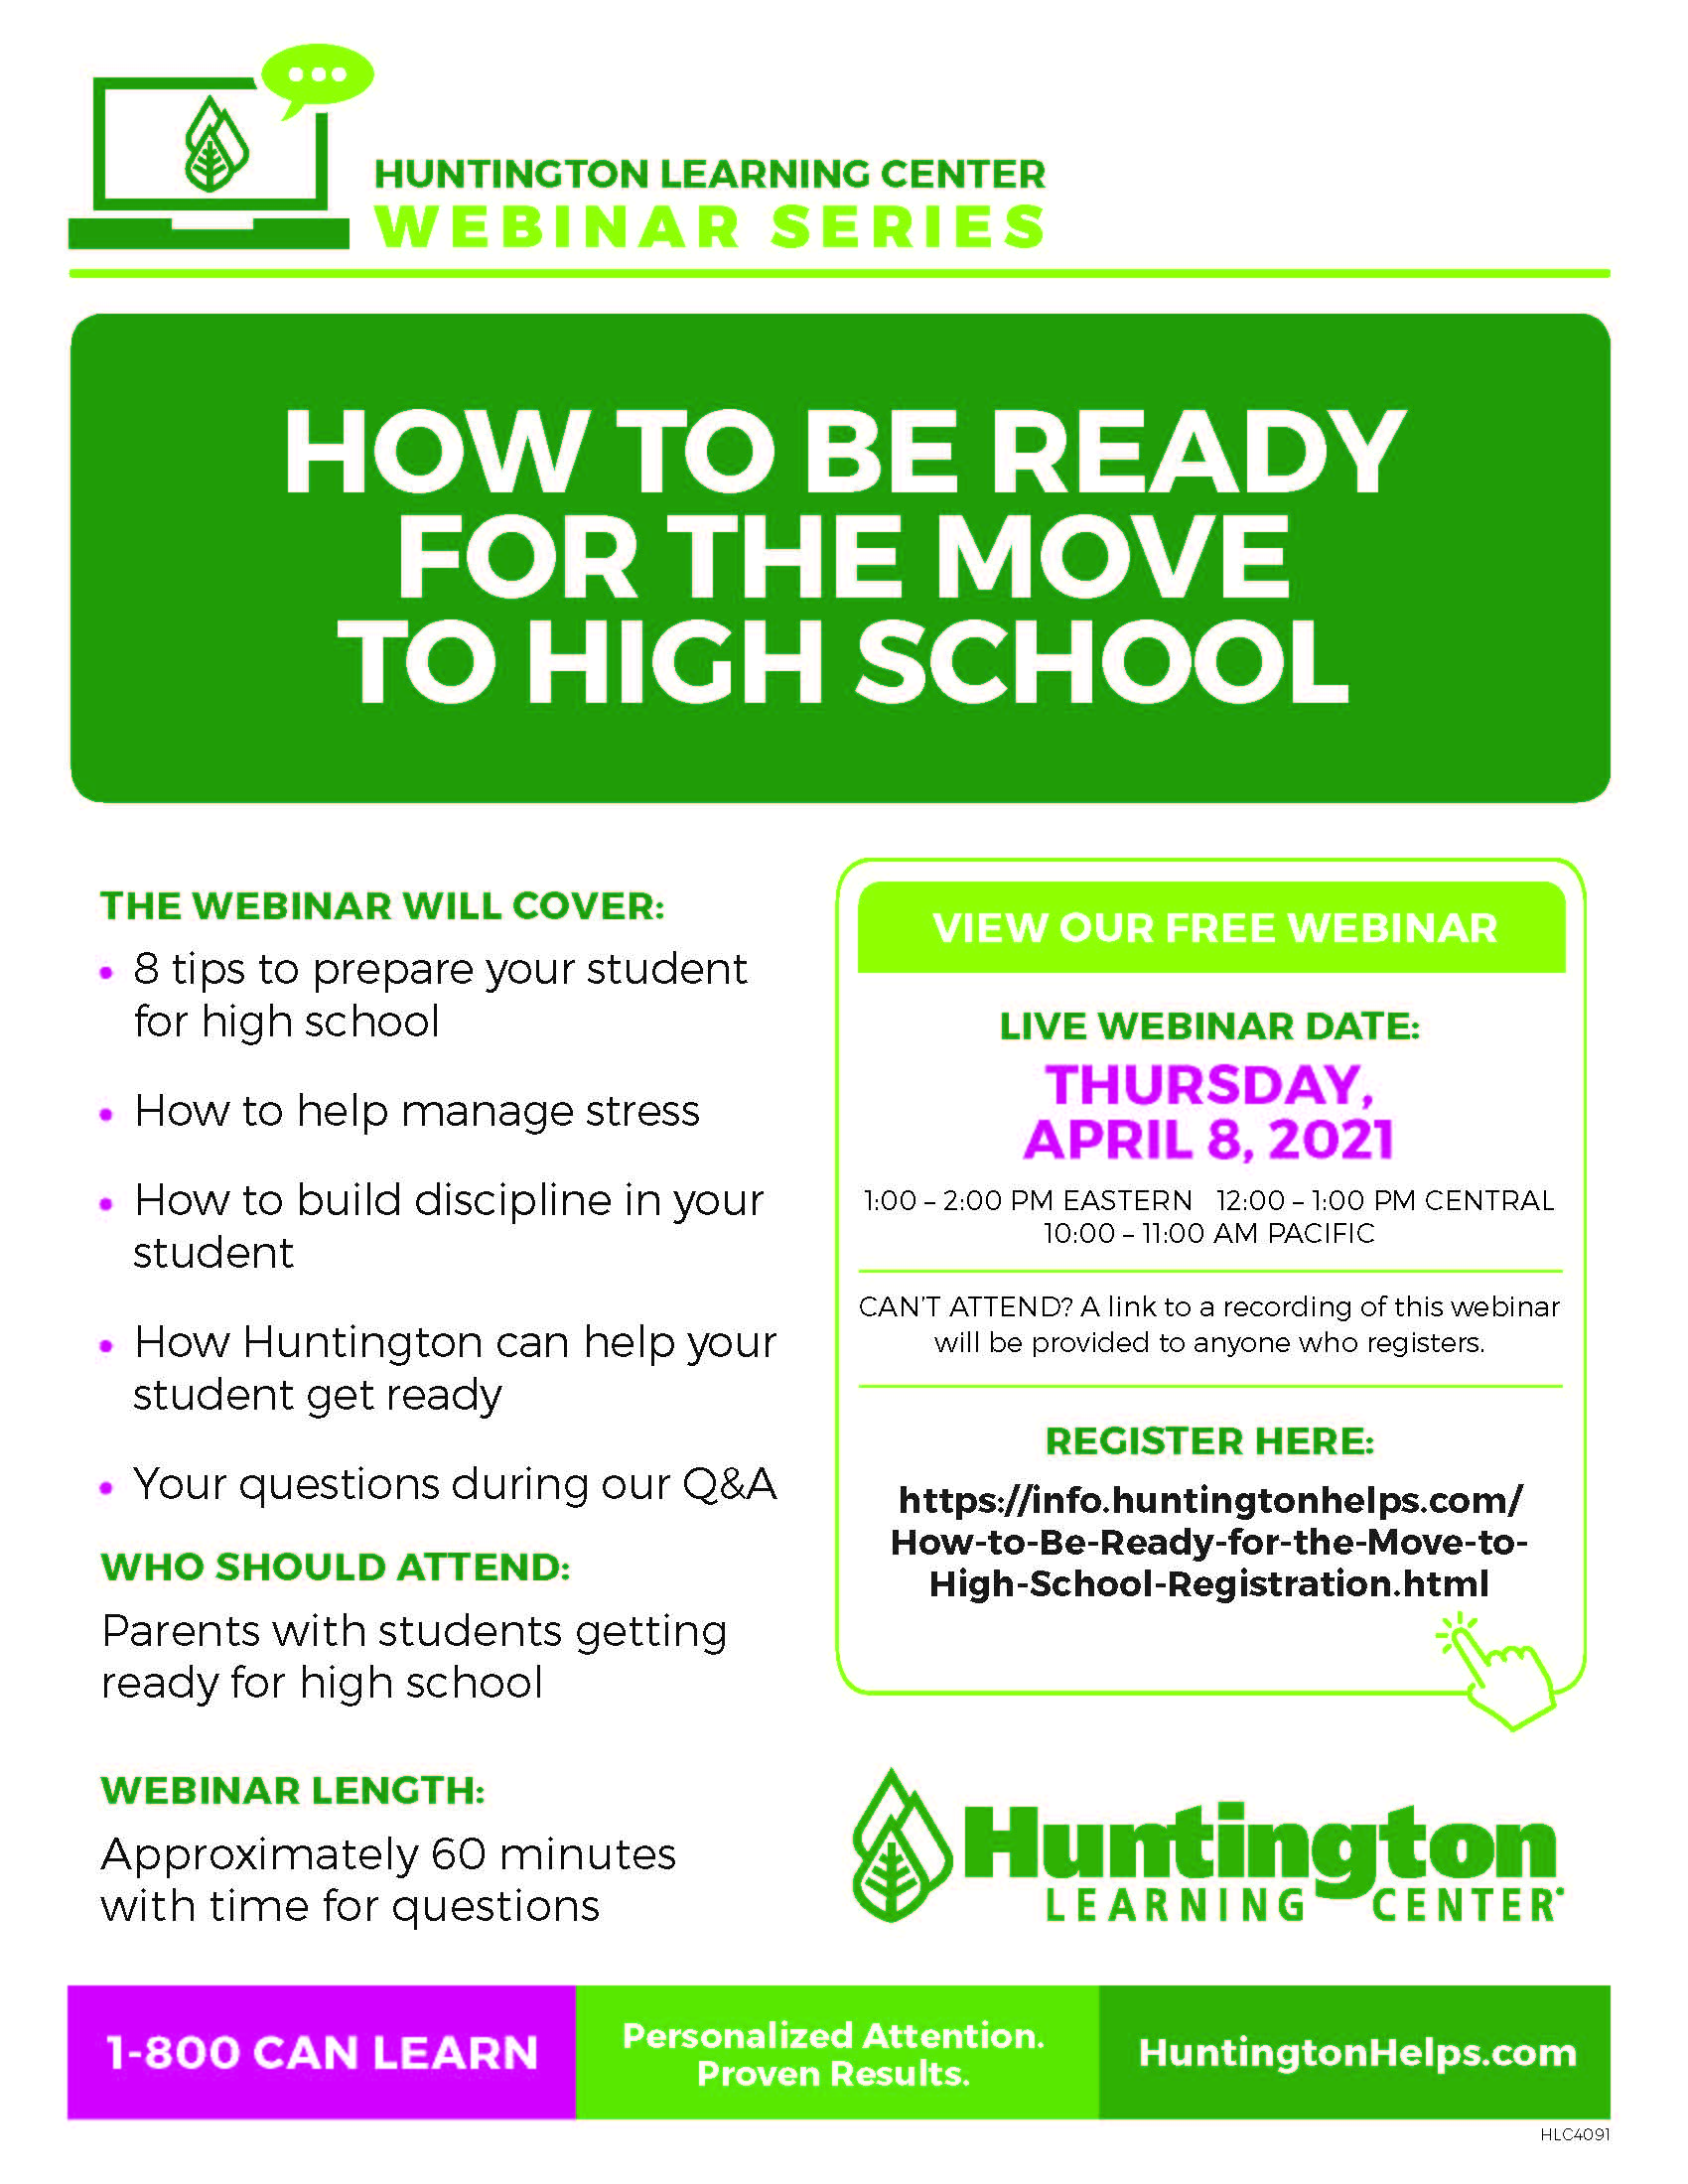 ONLINE How to Be Ready for the Move to High School at Huntington Learning Center